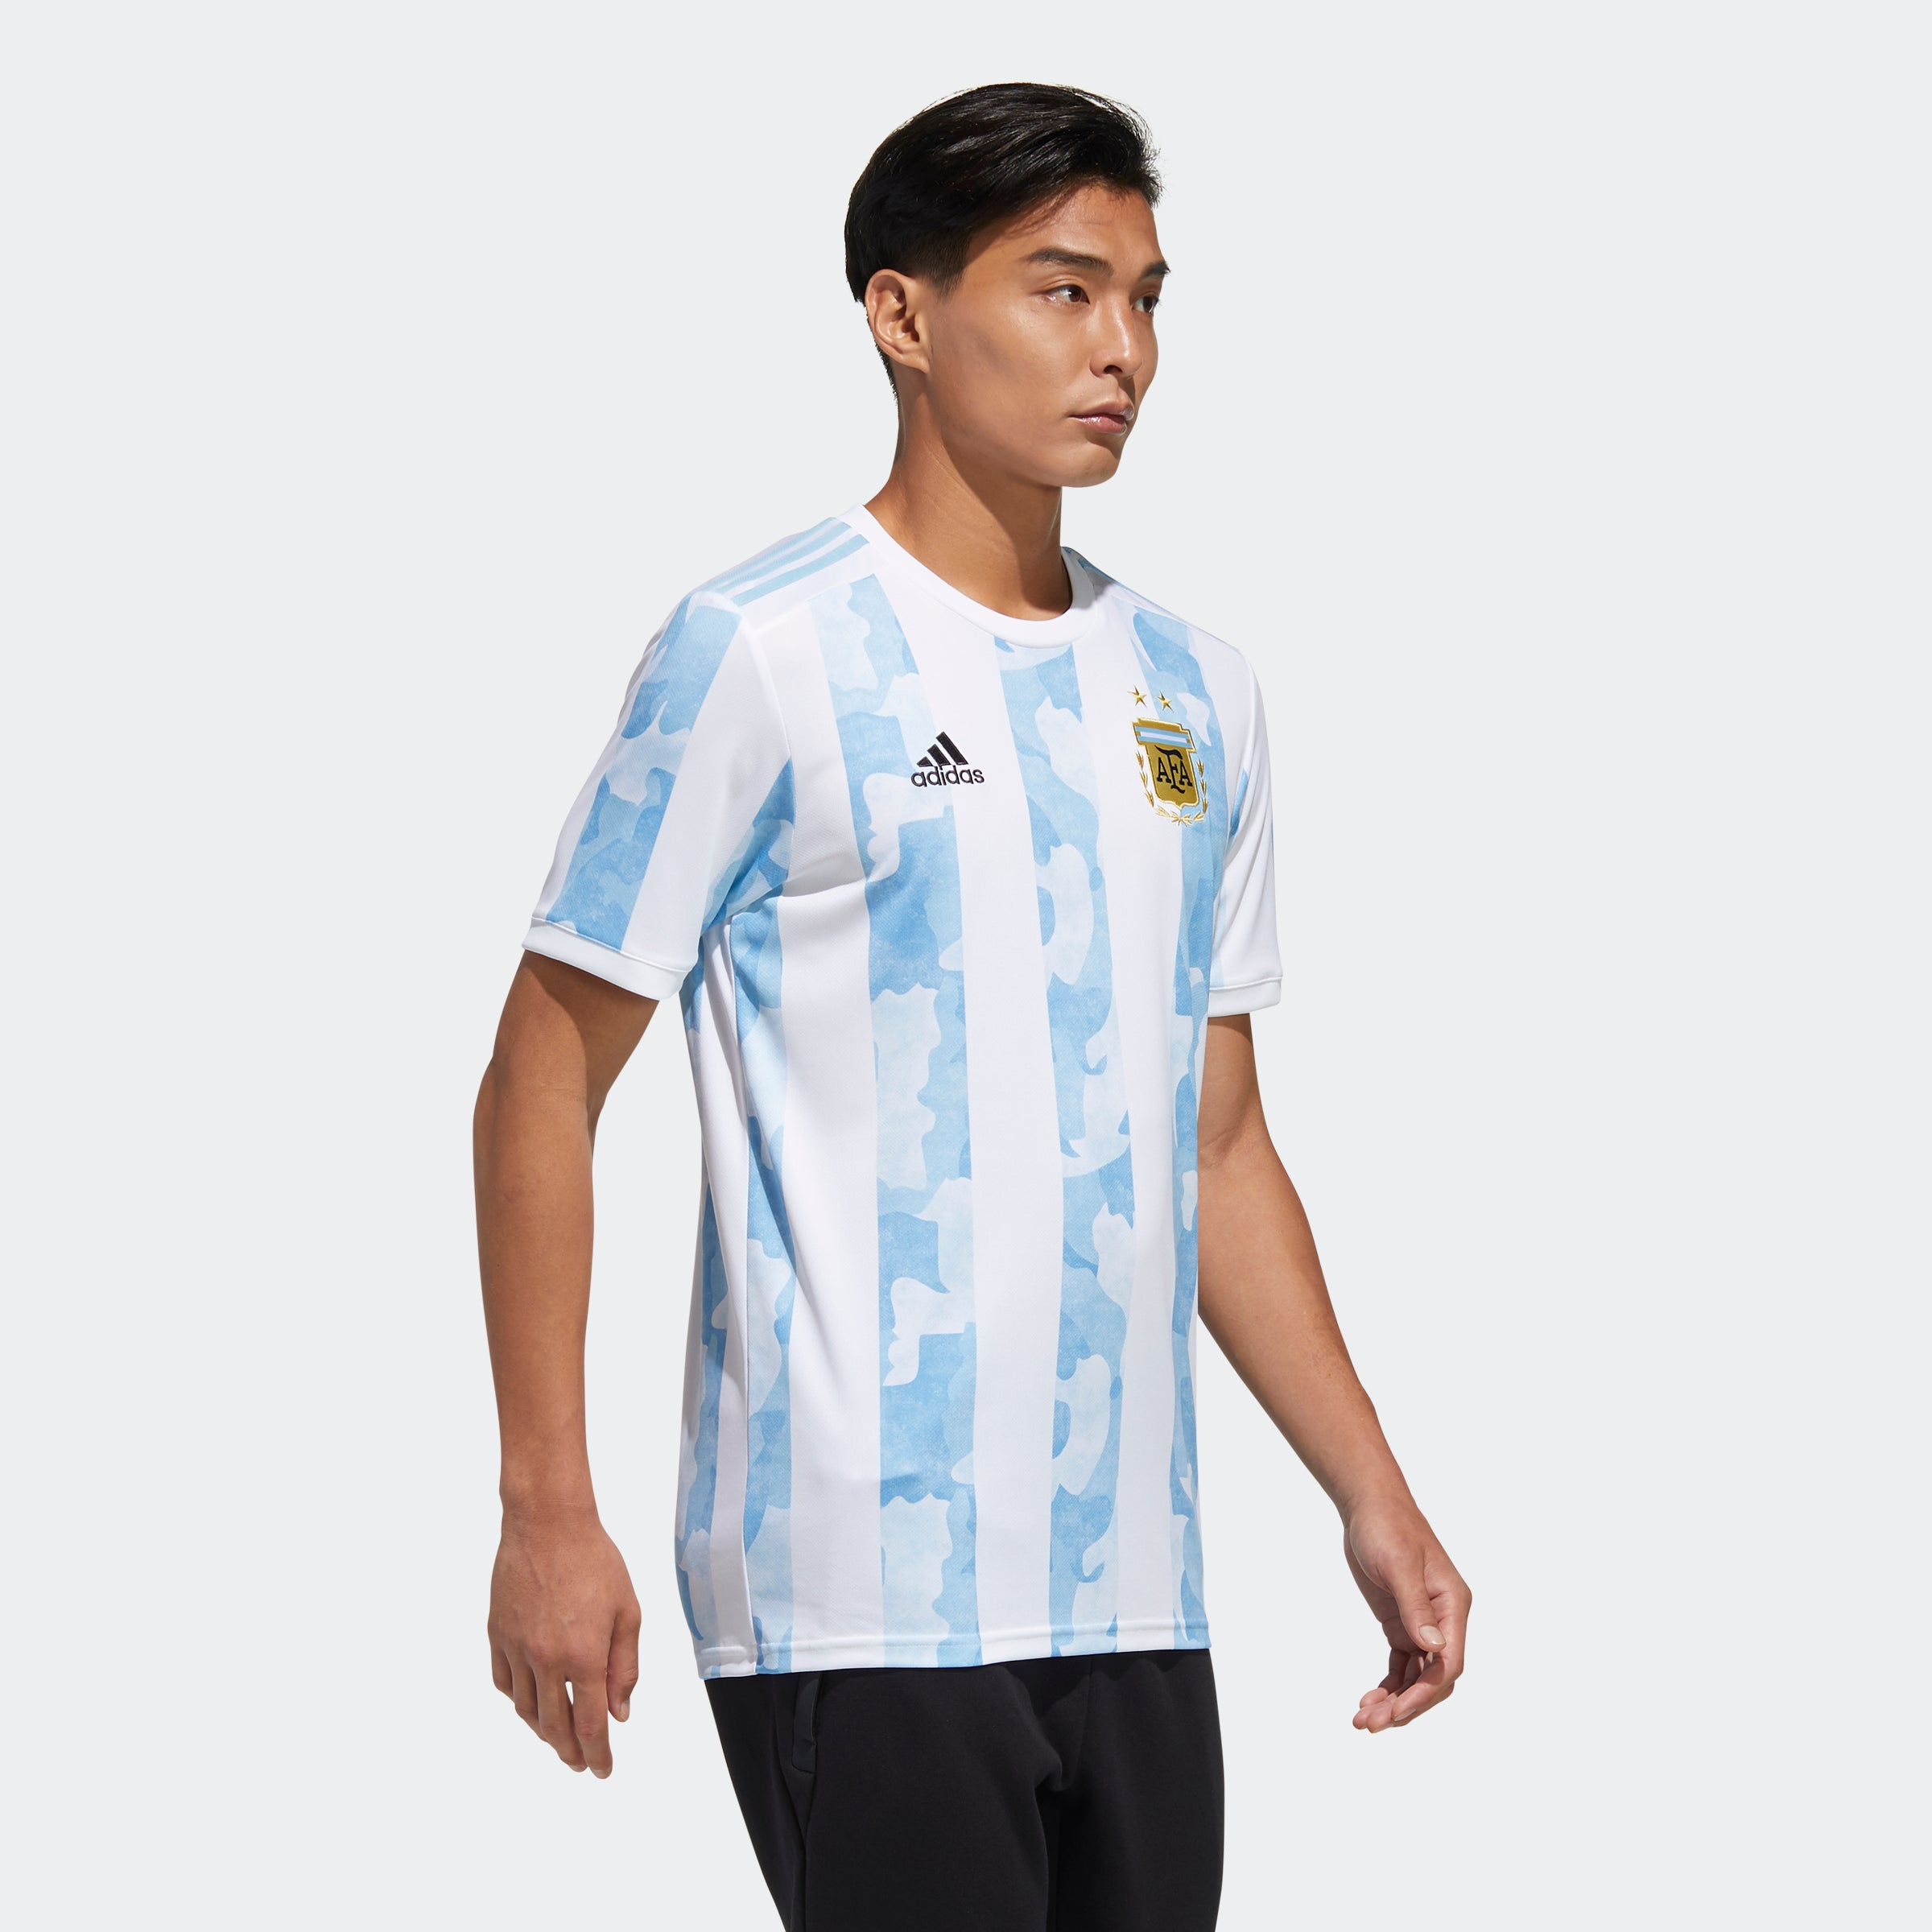 Argentina Home 2019/20 Jersey - White/Clear Blue - Niky's Sports